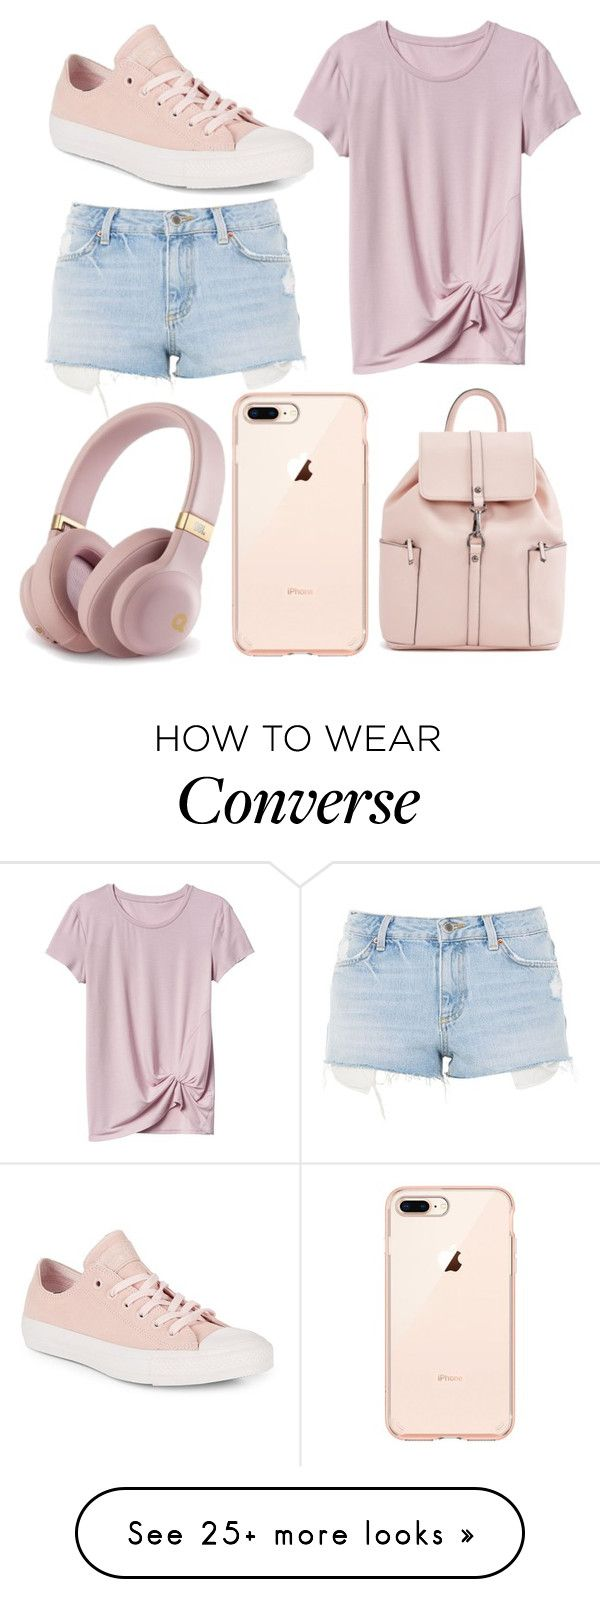 best outfits images on pinterest outfit ideas casual wear